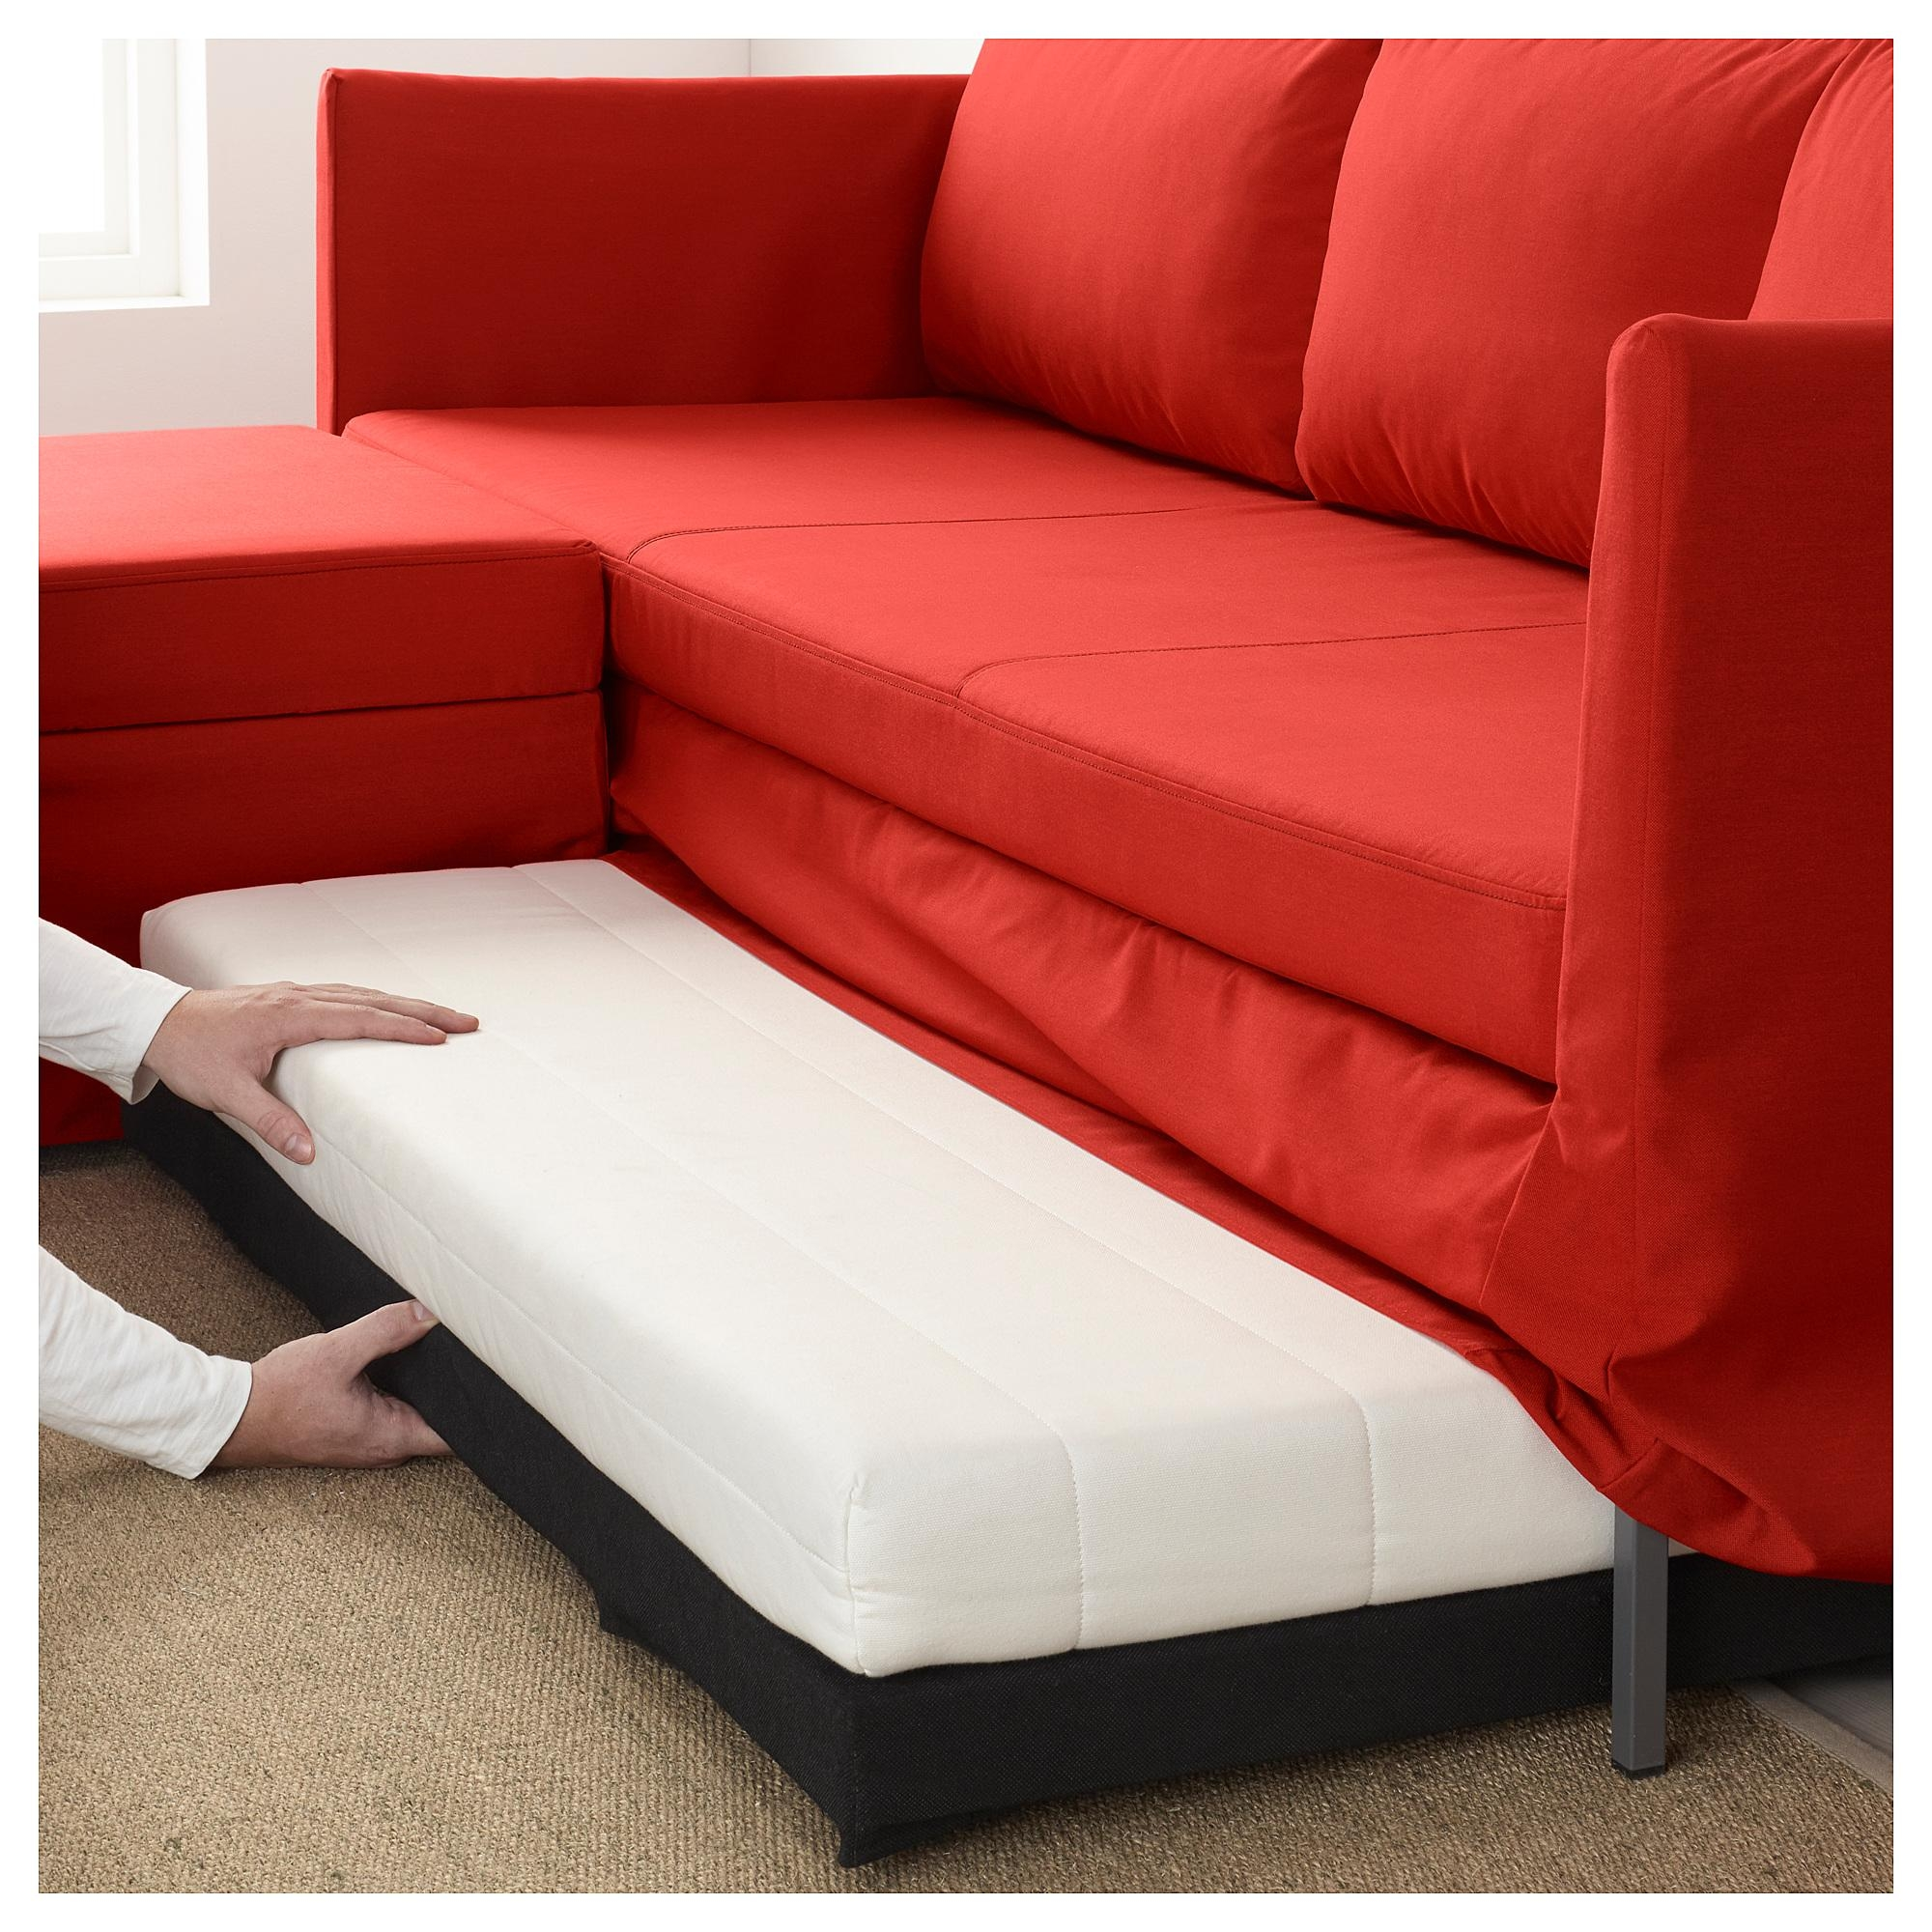 20 choices of red sofa beds ikea sofa ideas. Black Bedroom Furniture Sets. Home Design Ideas